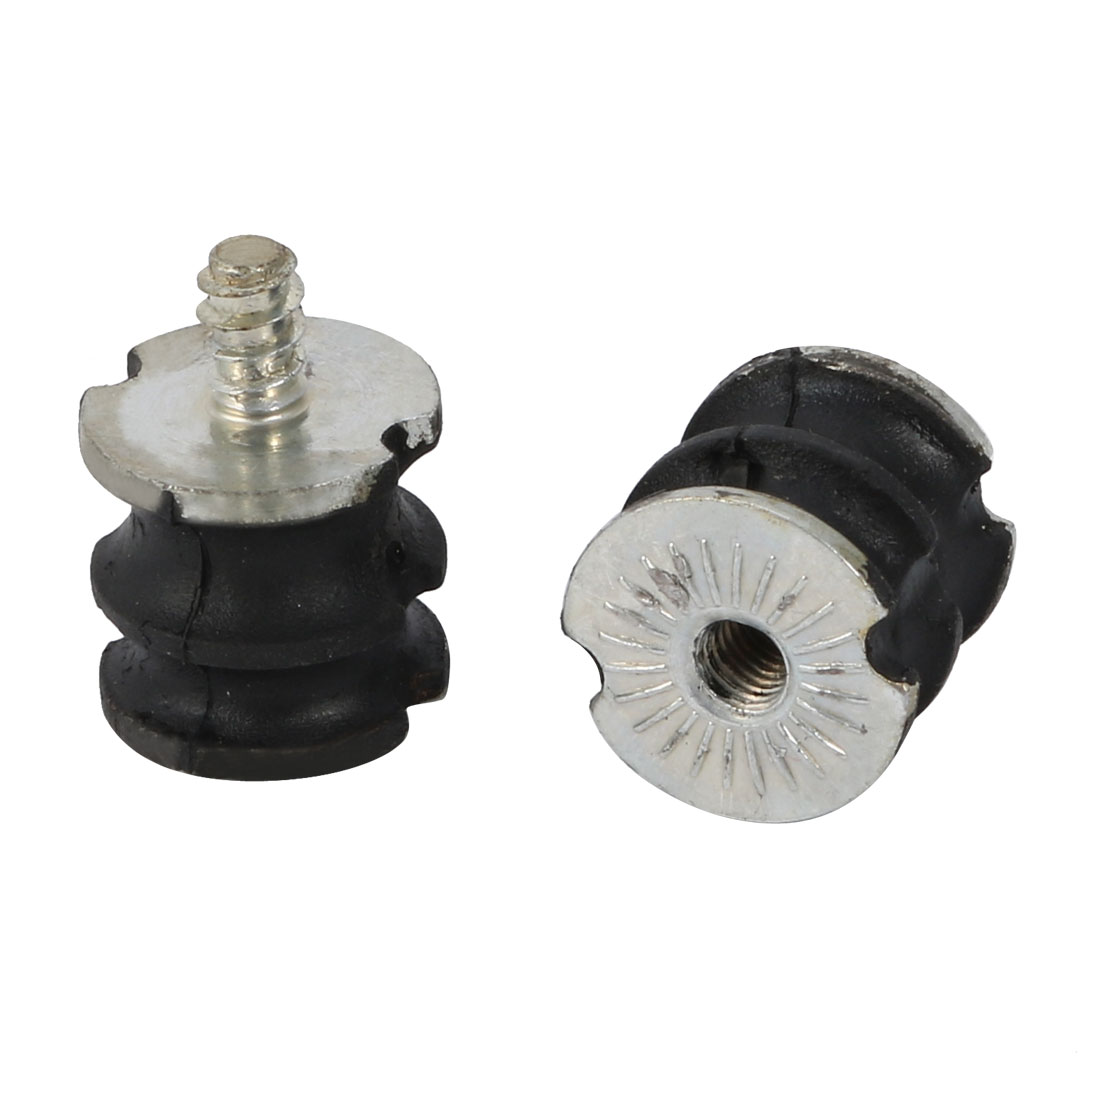 2pcs Shock Absorber Cushion Parts for 268 Weedeater String Trimmer Edger Blower